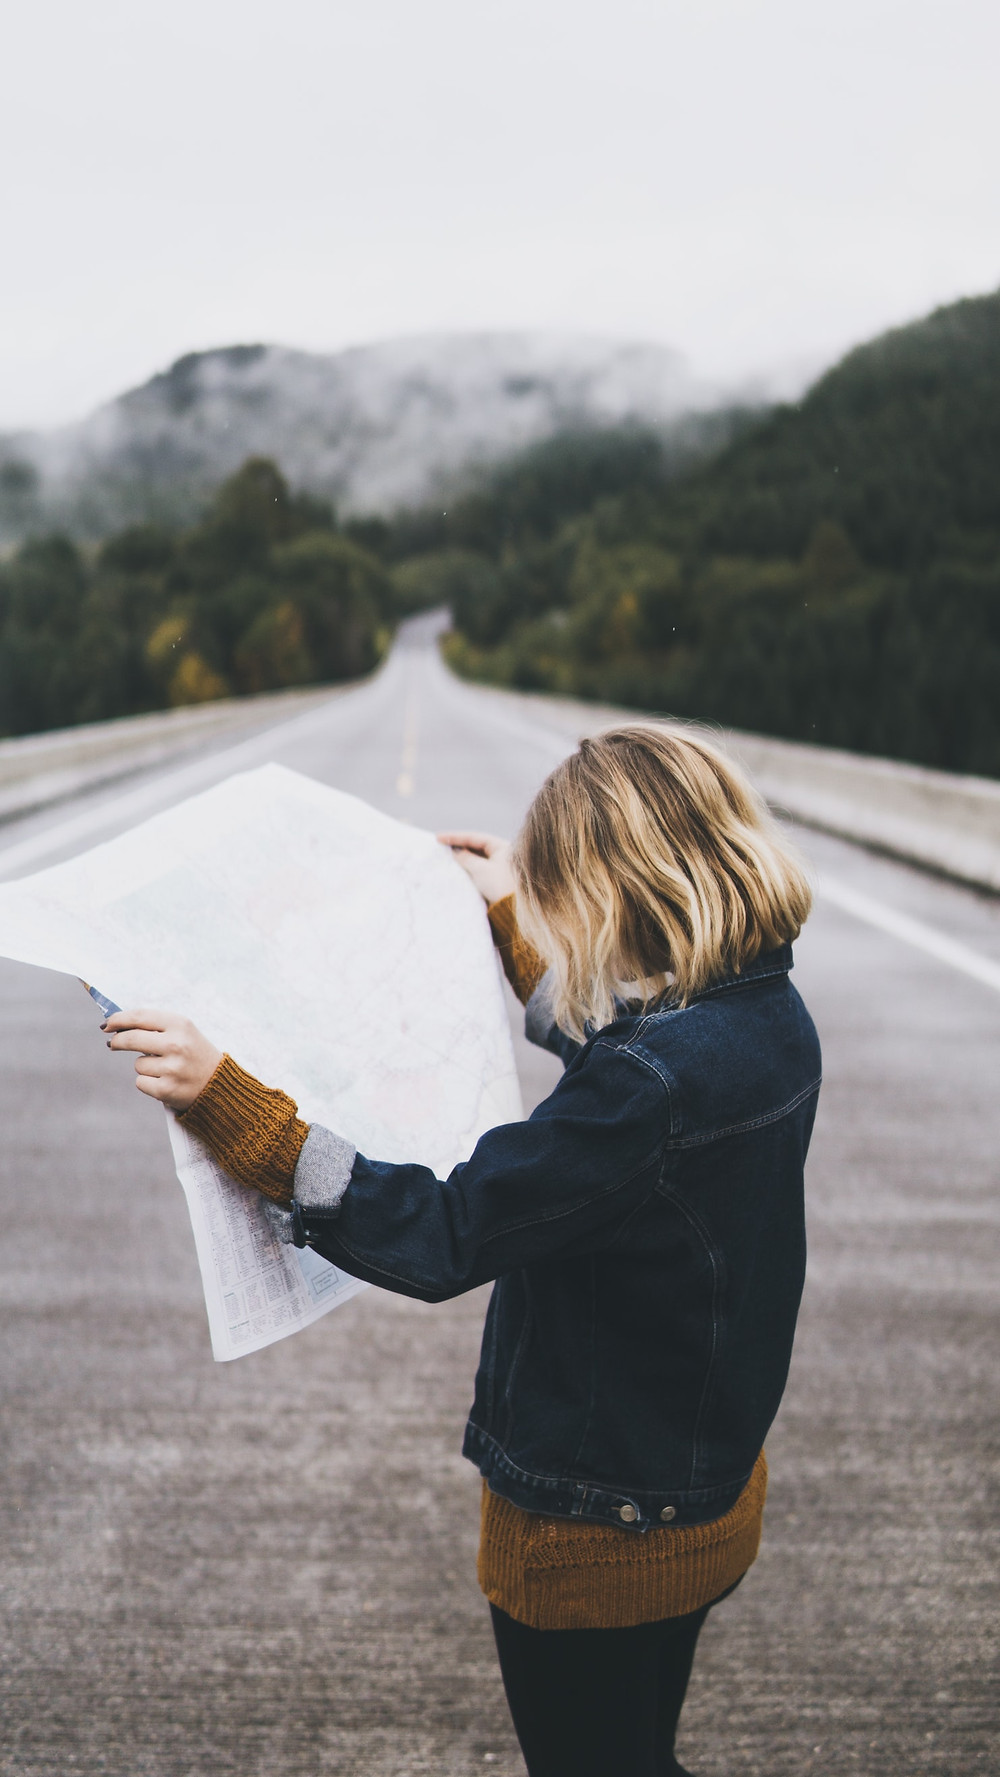 Blonde Person Standing In Middle Of Asphalt Road Through Conifer Forest With Gray Snowy Mountain In Distance Looks At Large Map Boundaries? What Do You Mean, Having Boundaries? Relationship Break-Up Self Improvement Lifestyle Advice Blog Fabsolutely Co